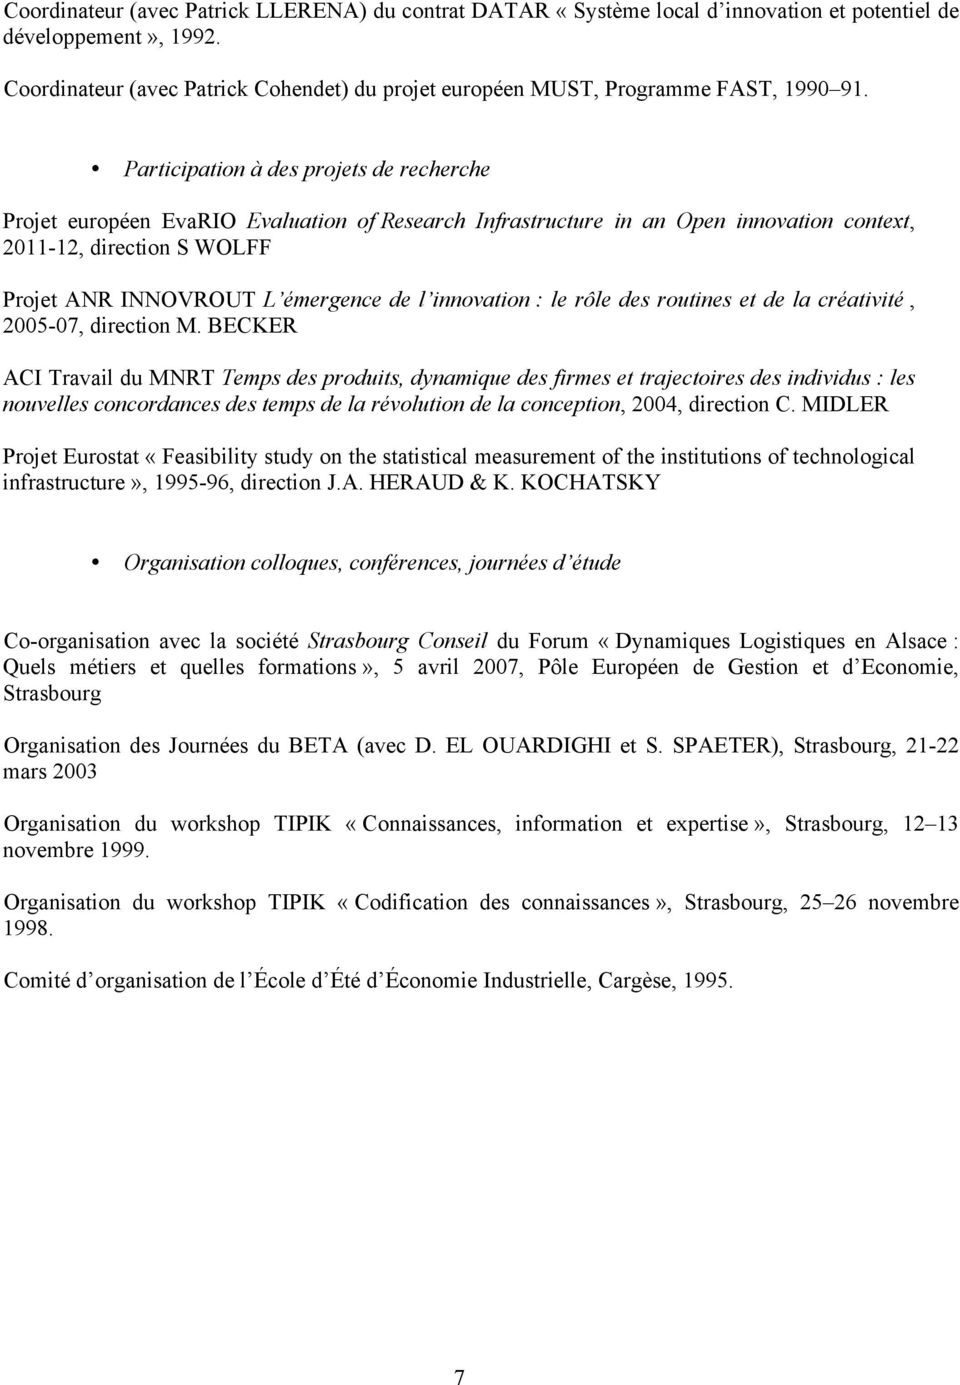 Participation à des projets de recherche Projet européen EvaRIO Evaluation of Research Infrastructure in an Open innovation context, 2011-12, direction S WOLFF Projet ANR INNOVROUT L émergence de l